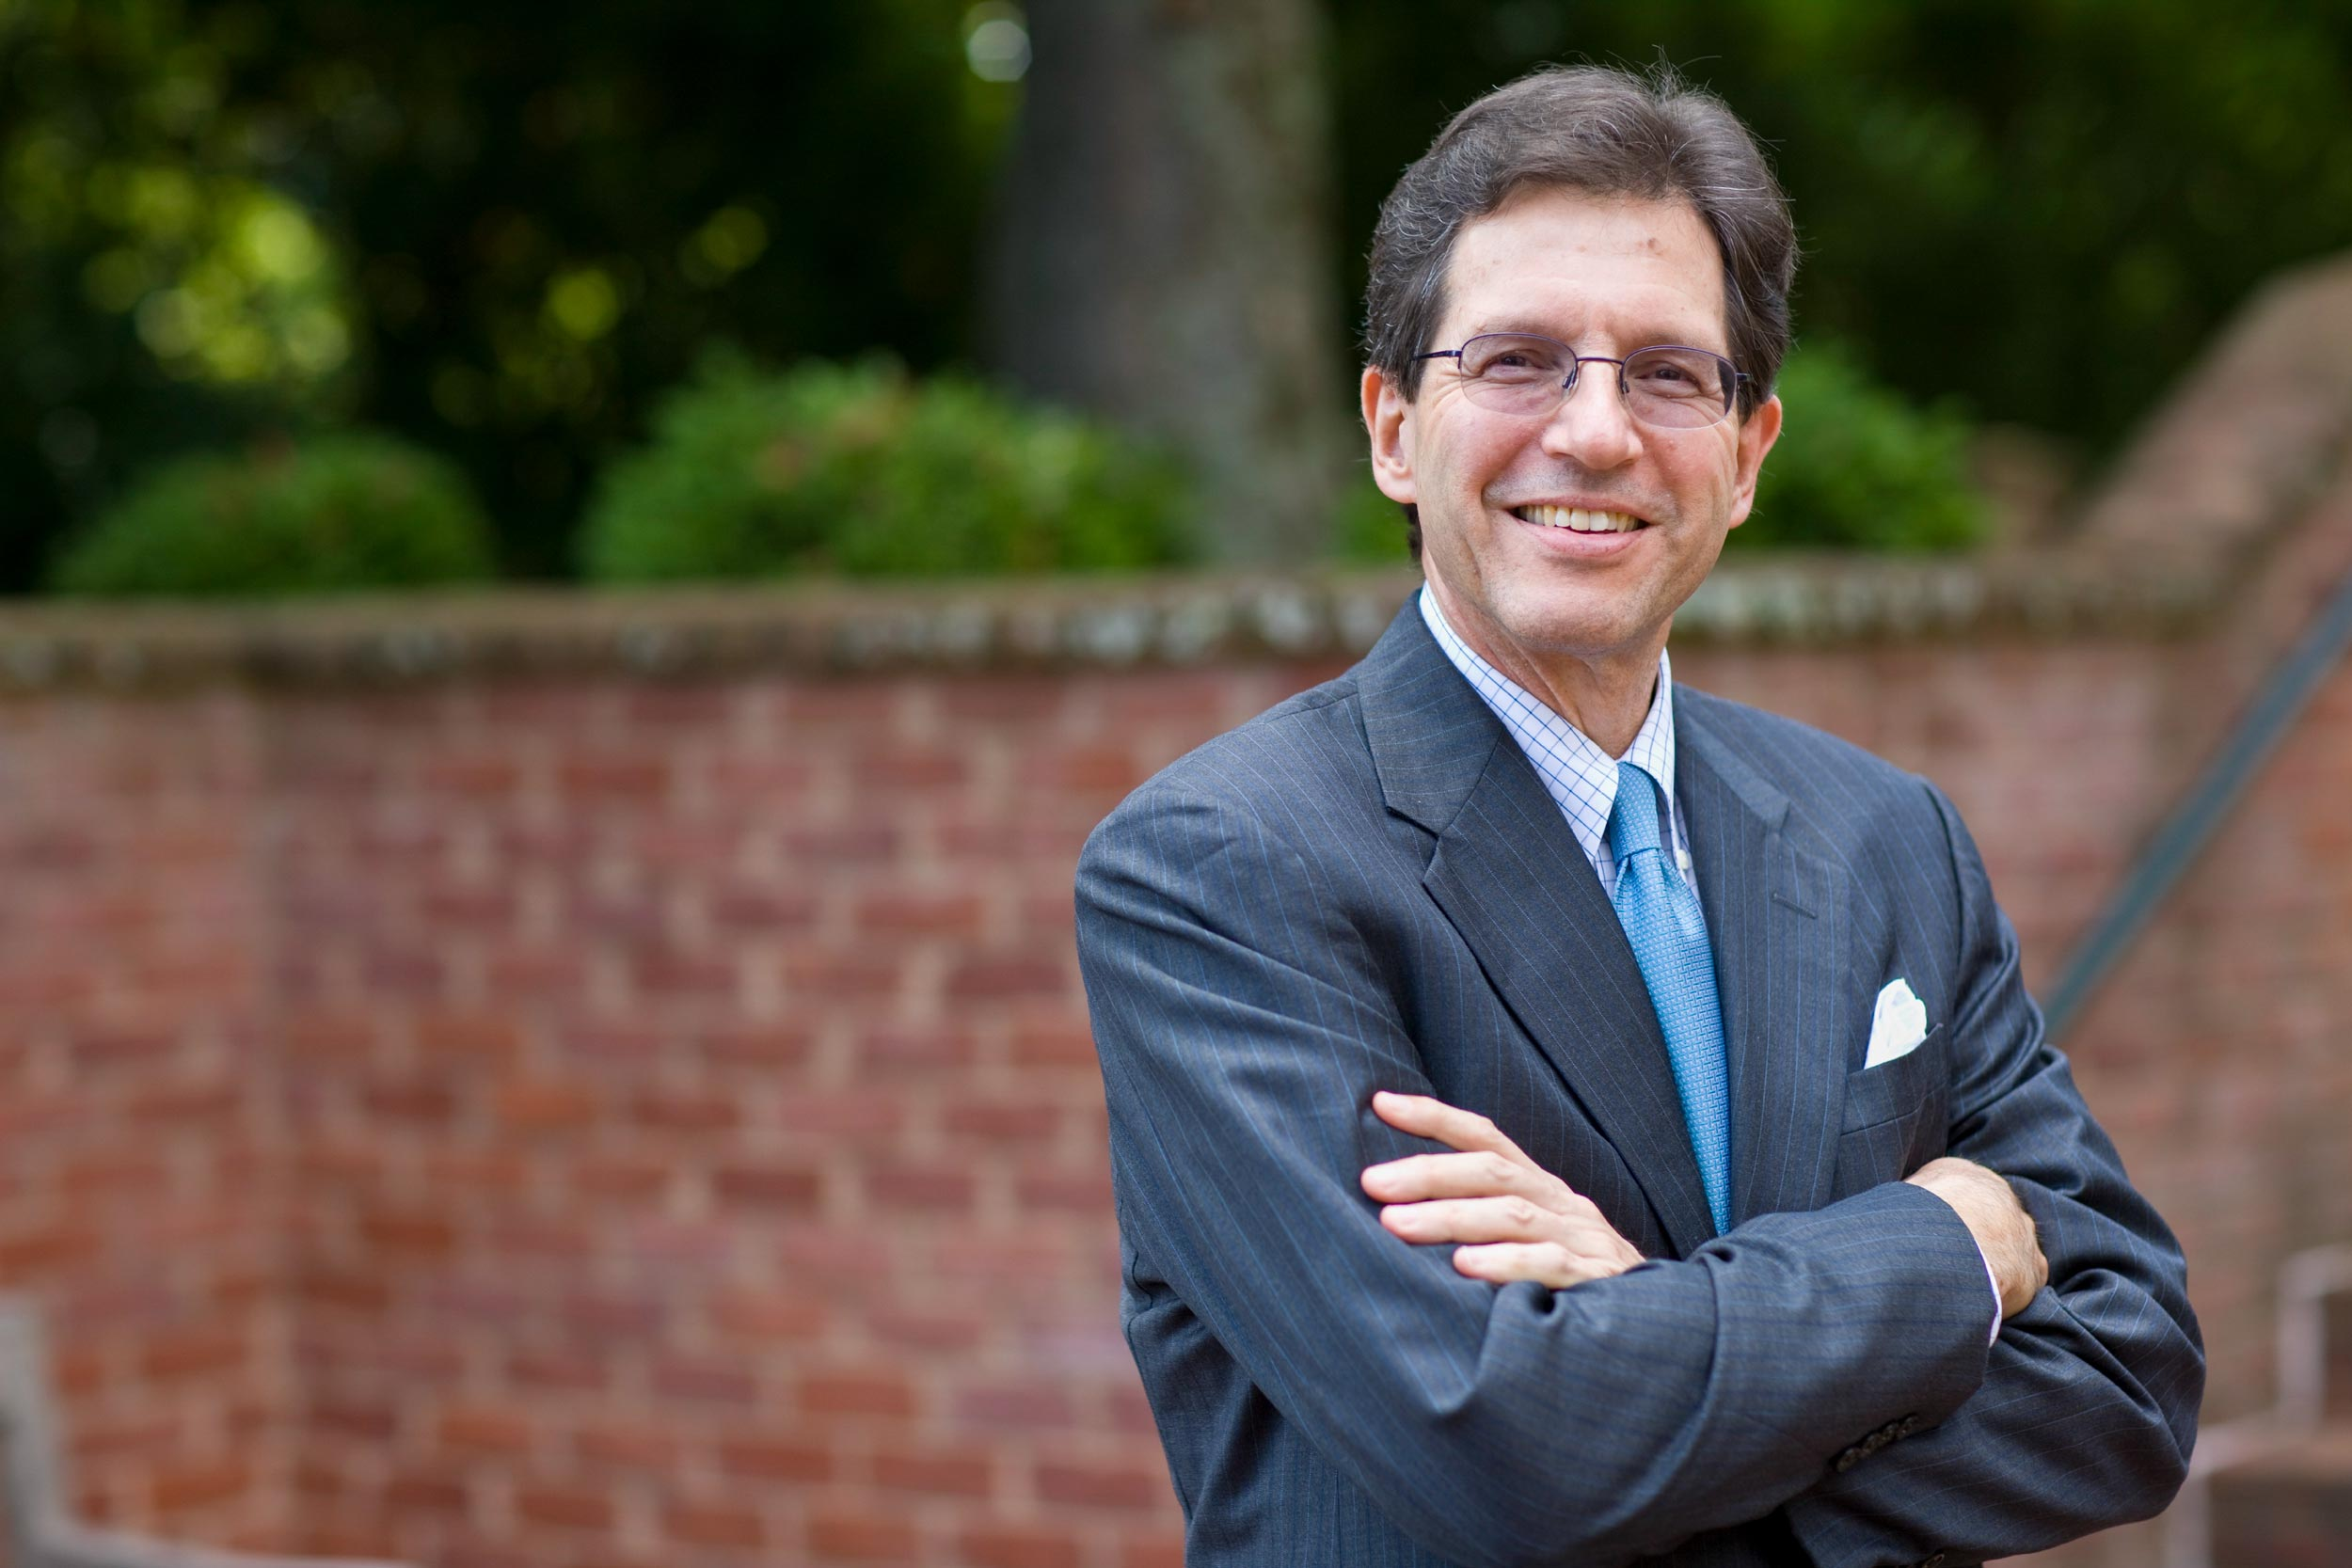 Harry Harding specializes in Asia and U.S.-Asia relations. In addition to his appointment in the Batten School, he is a senior fellow at UVA's Miller Center. (Photo by Dan Addison, University Communications)